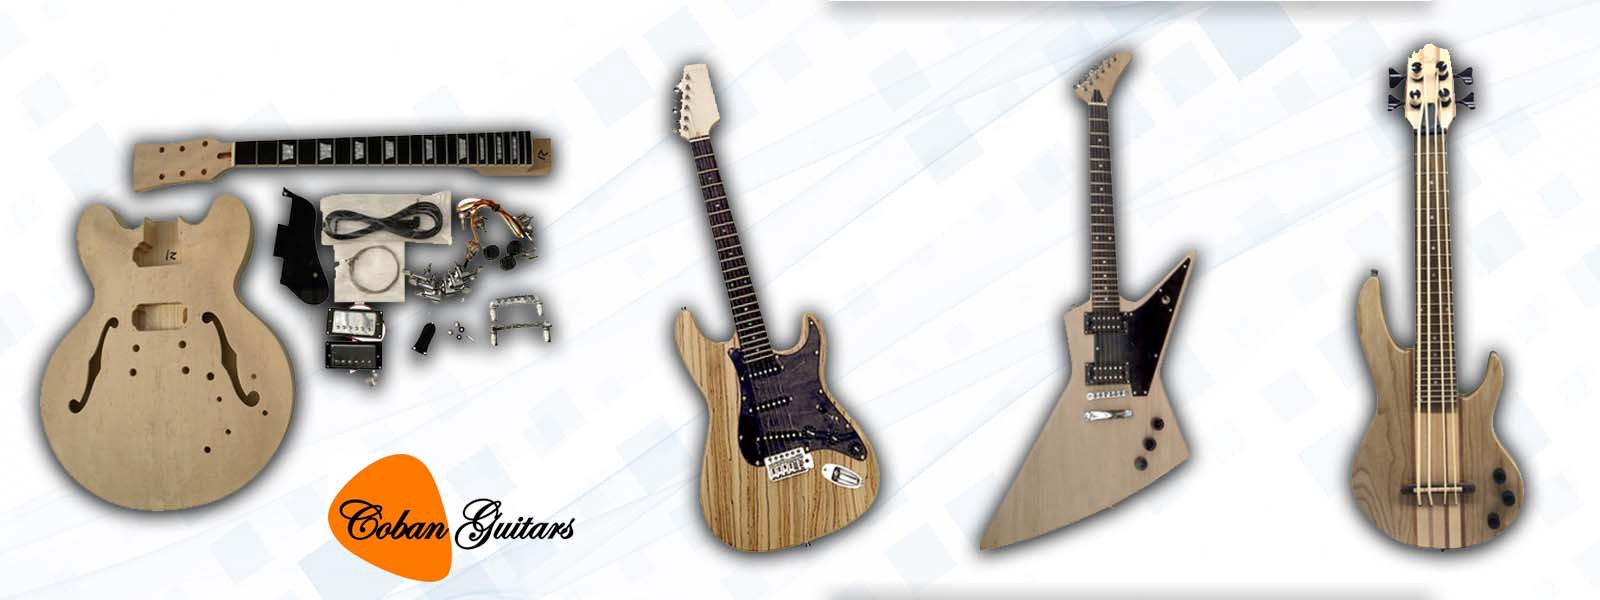 Electric Guitar Kit Wiring Diagram Libraries Alston Kits Uk Onlineguitar With Premium Components Of Guitars In